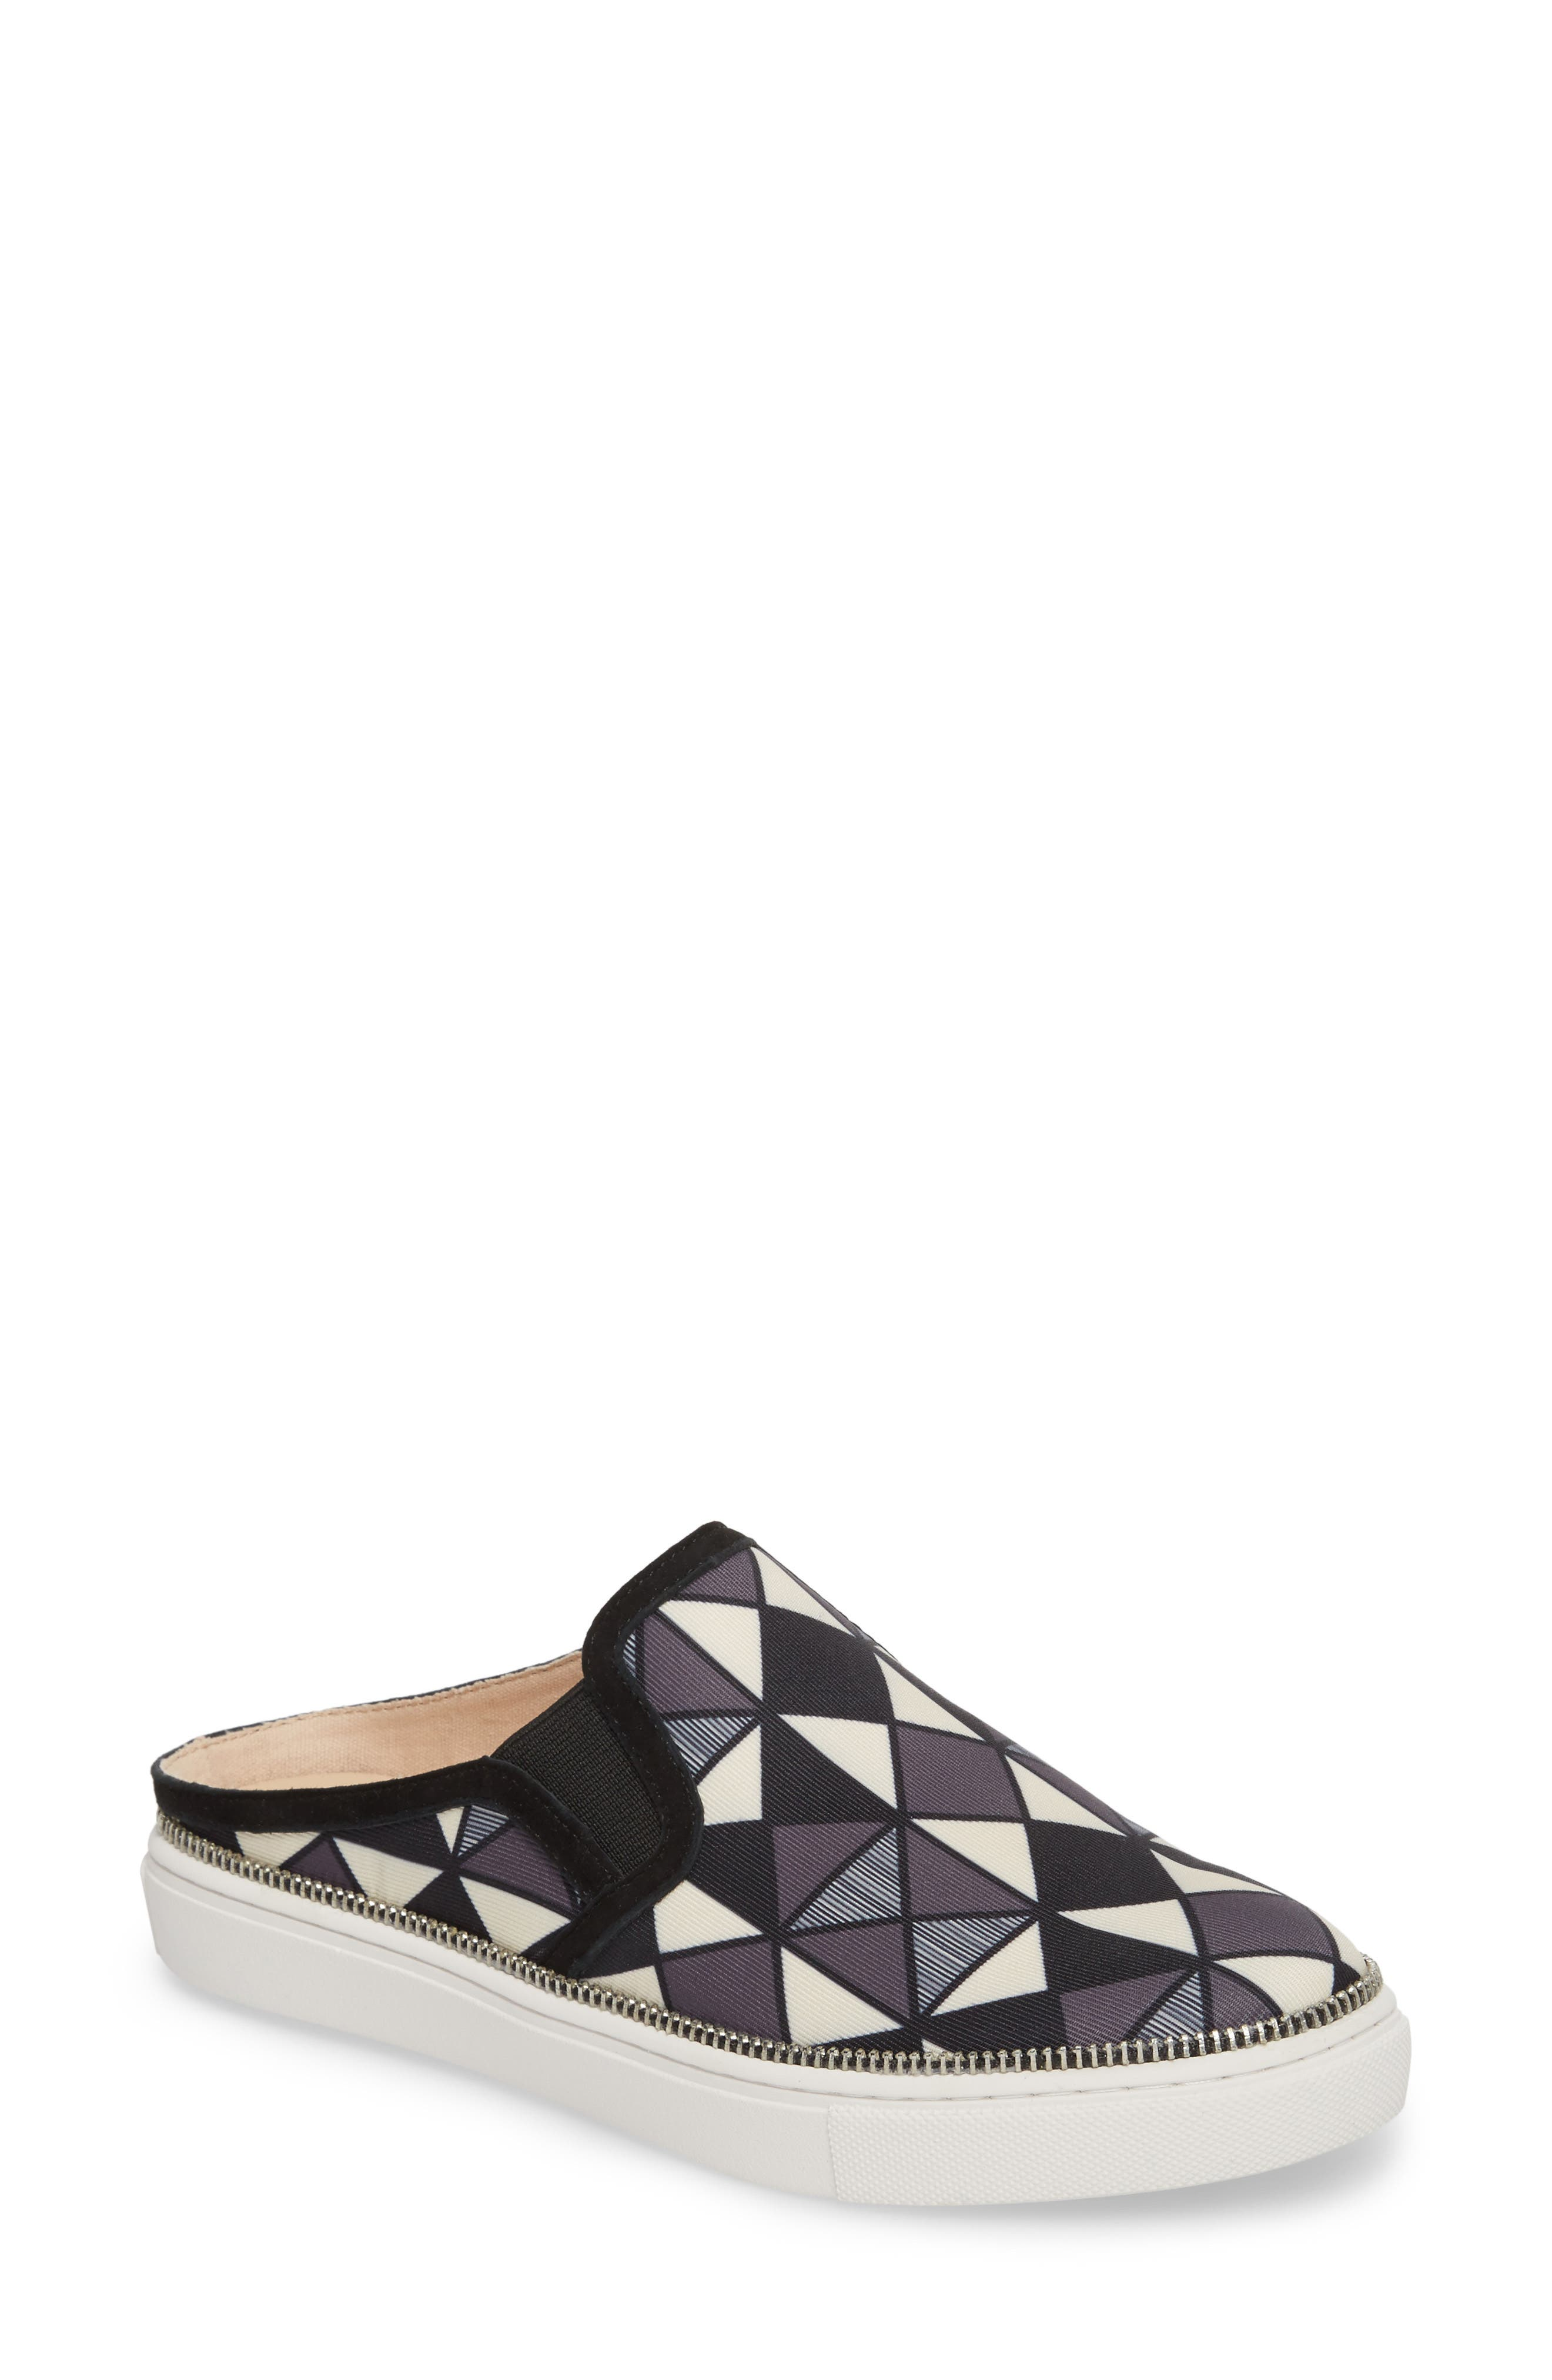 Hayden Sneaker Mule,                         Main,                         color,